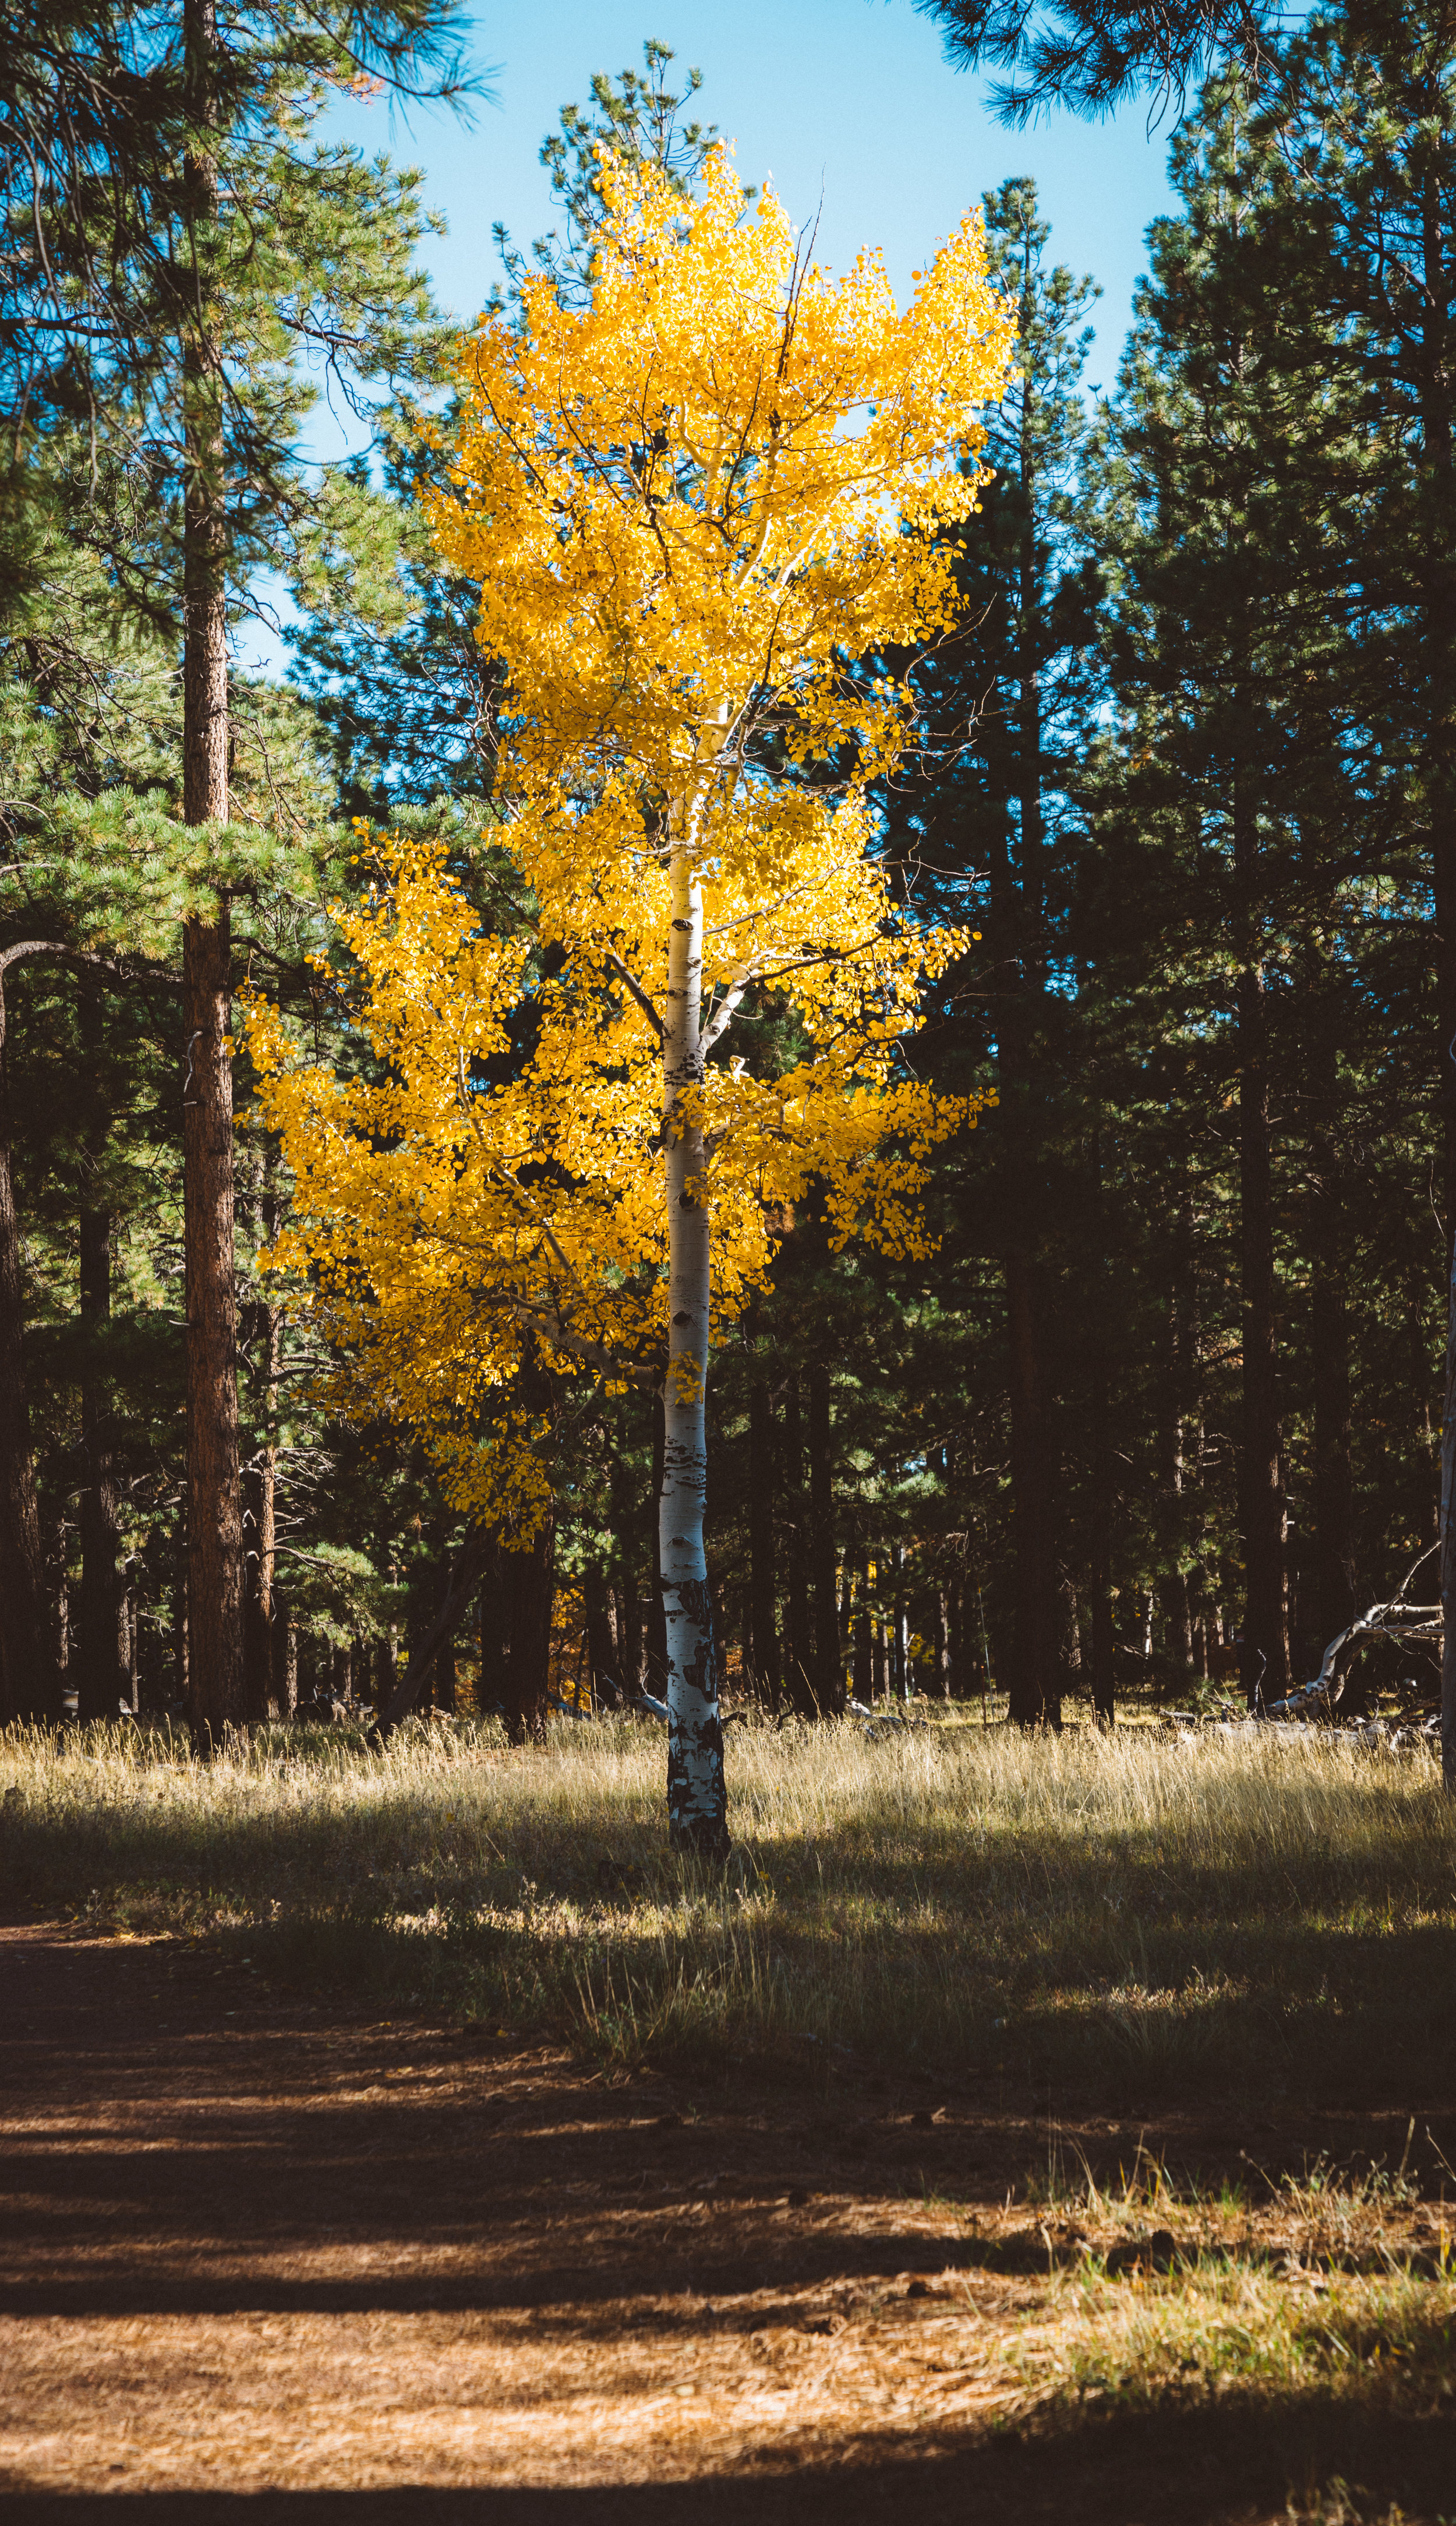 While this isn't a great photo, while wandering the North Rim, it was these trees that made me realize Autumn had truly arrived.